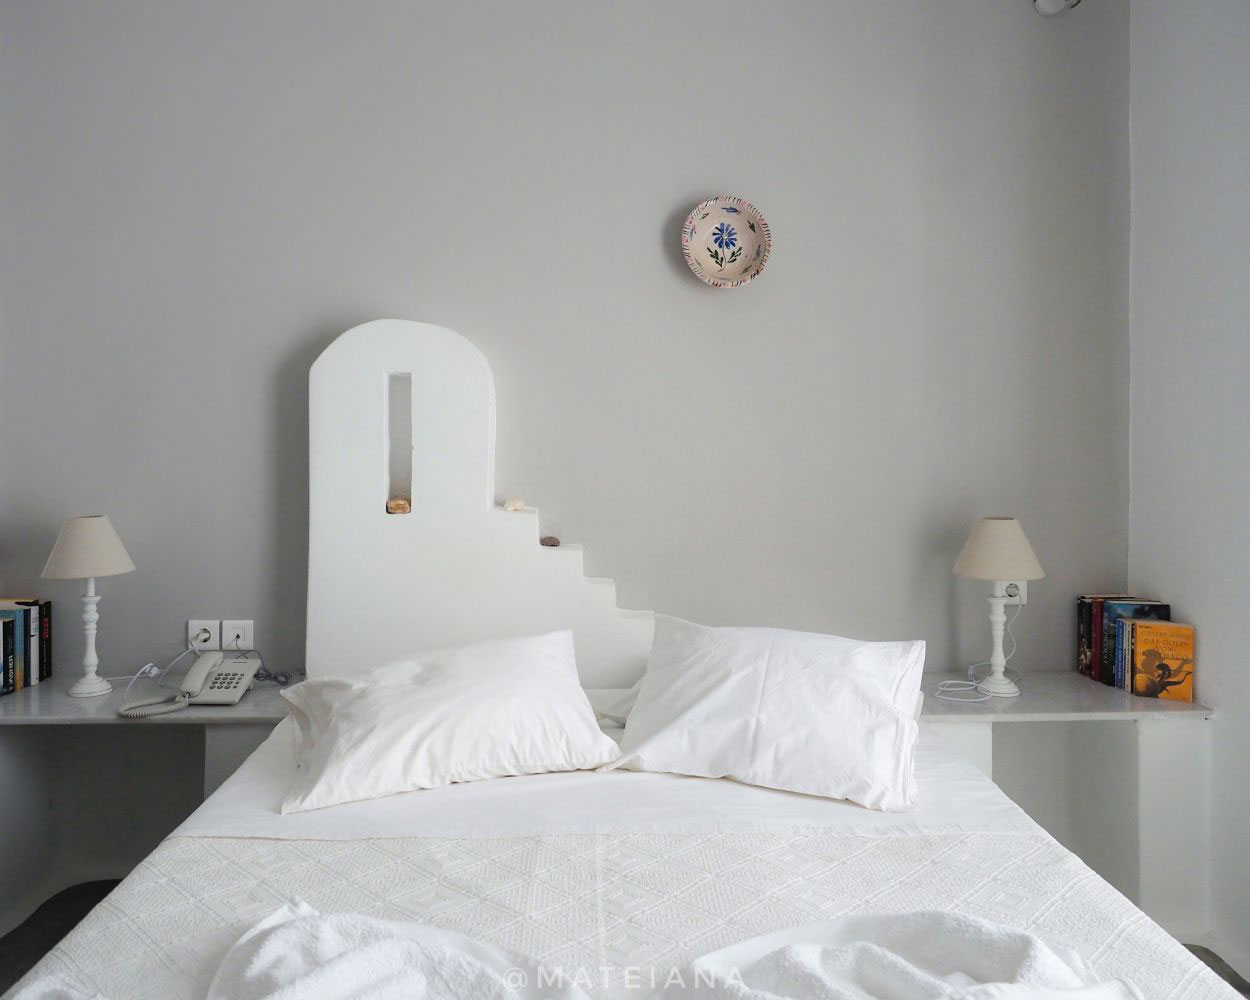 Cycladic-style bed at Bungalows Svoronos, Paros